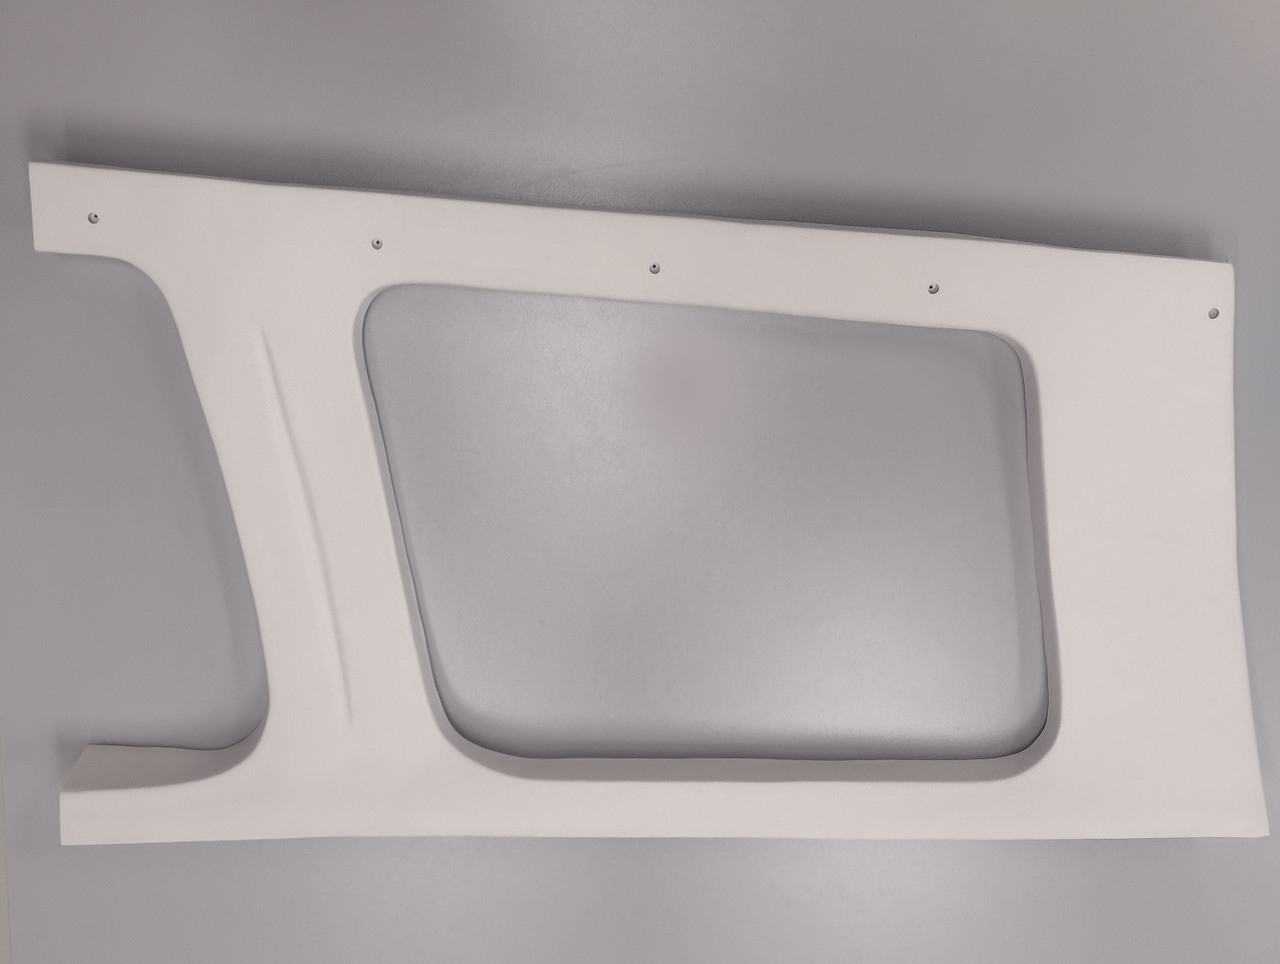 P39759-21, Window Trim, Middle Left, piper, 32-301, 32-301T, 32R-301, 32R-301T, plane part, 39759-21